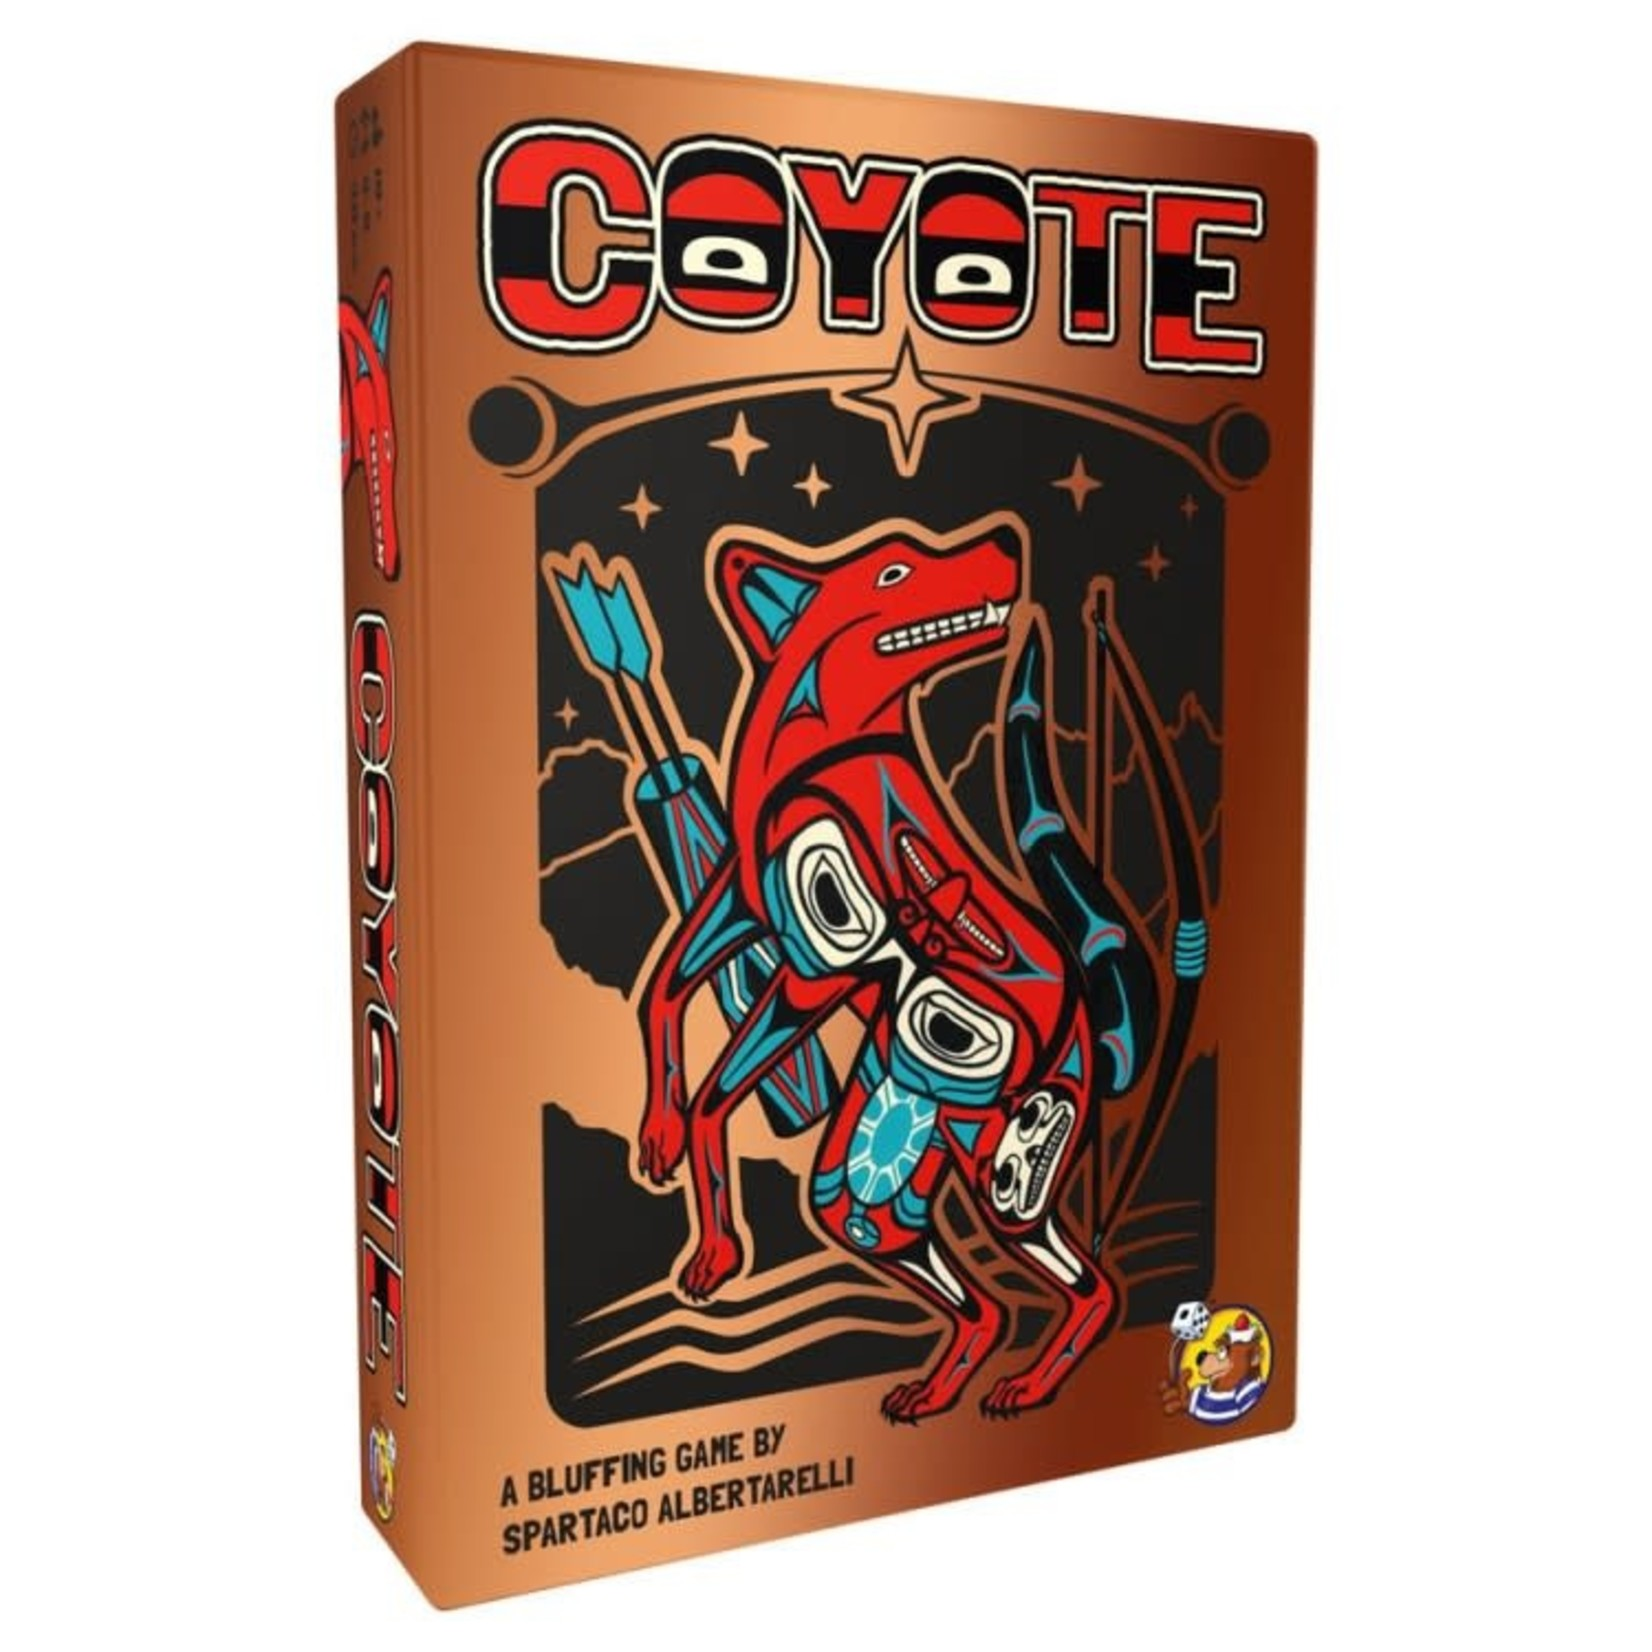 Asmodee Editions Coyote